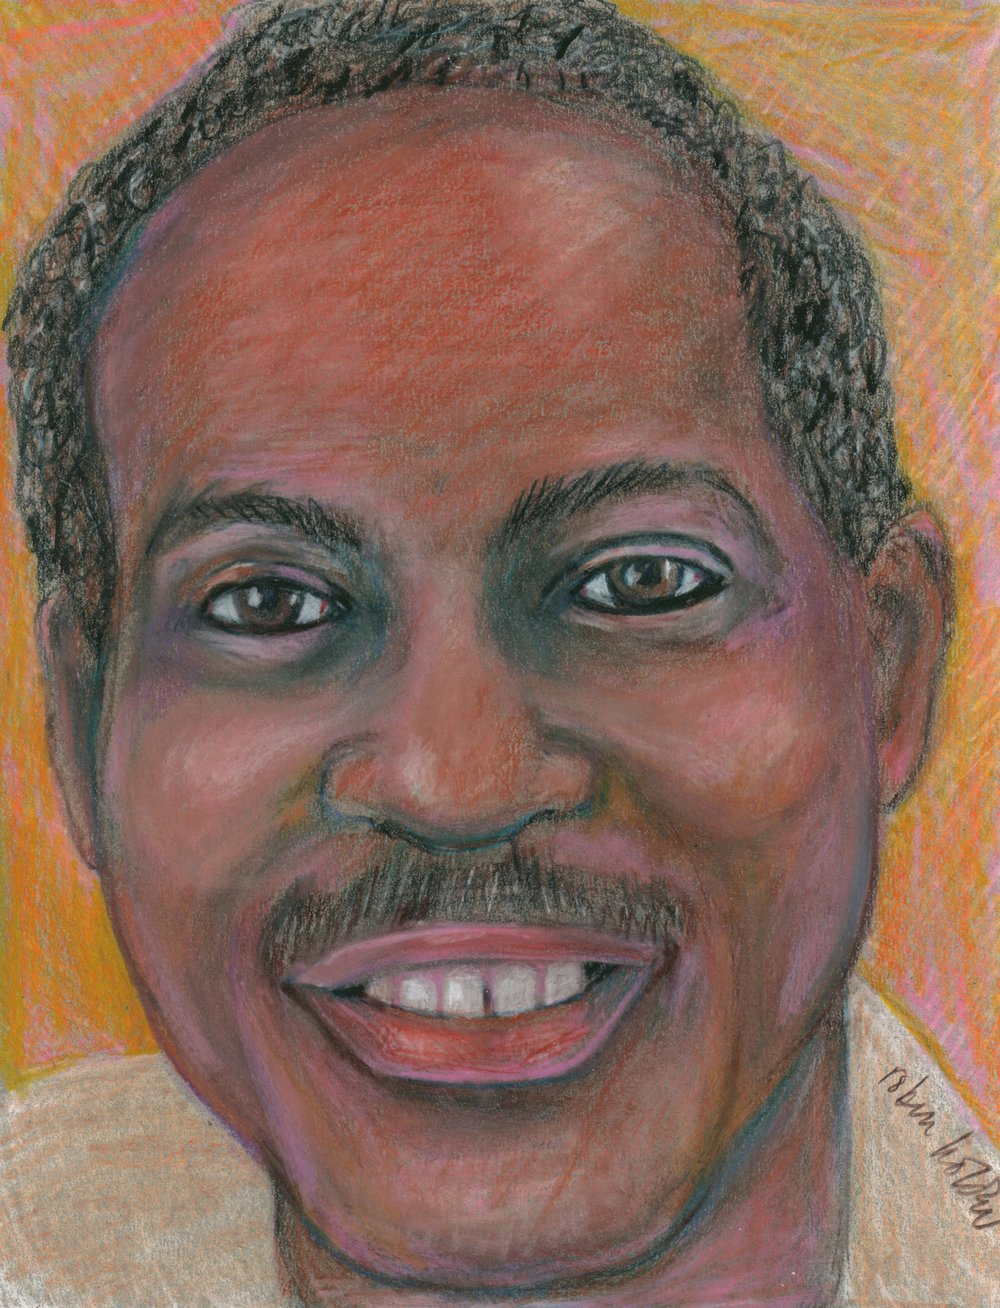 terry croom by robin holder.jpeg